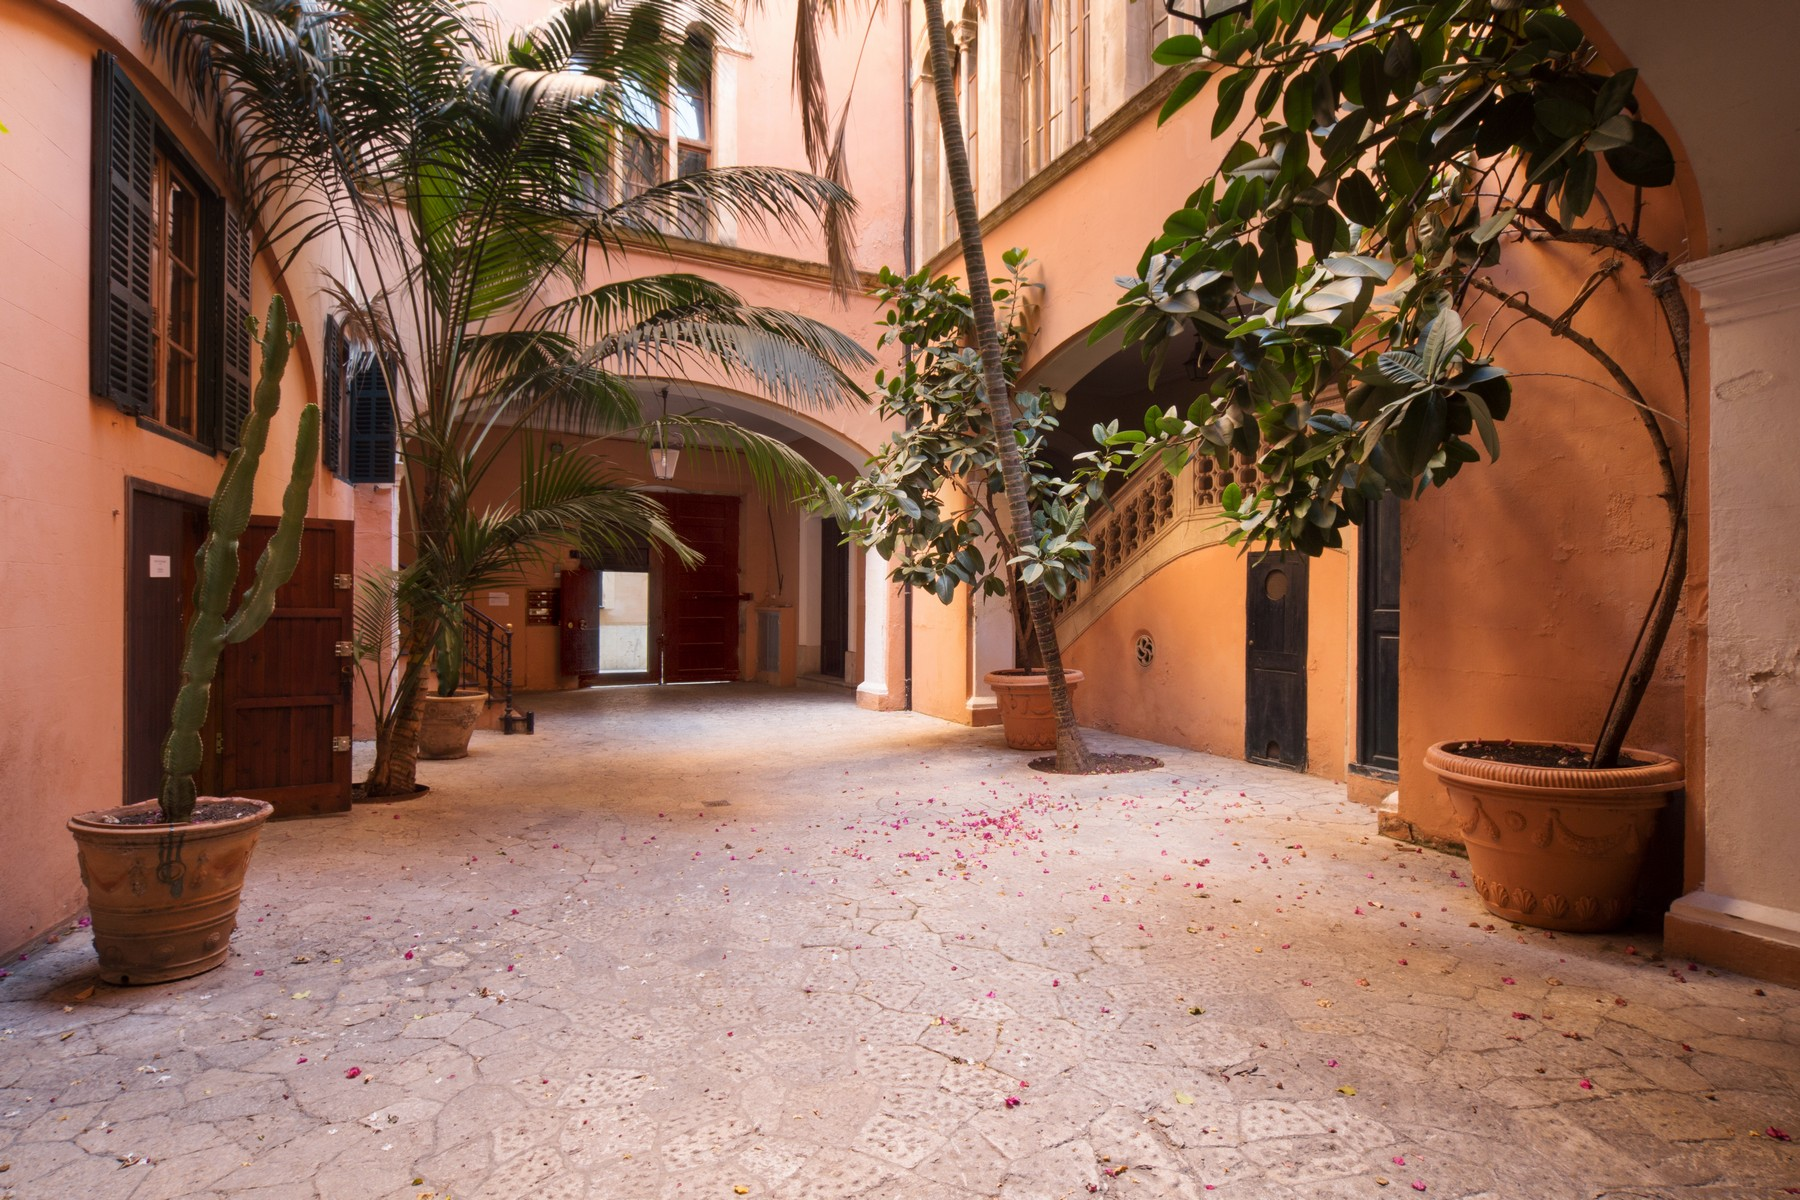 Single Family Home for Sale at Beautiful loft in Palma Old Town Palma Center, Mallorca, 07001 Spain